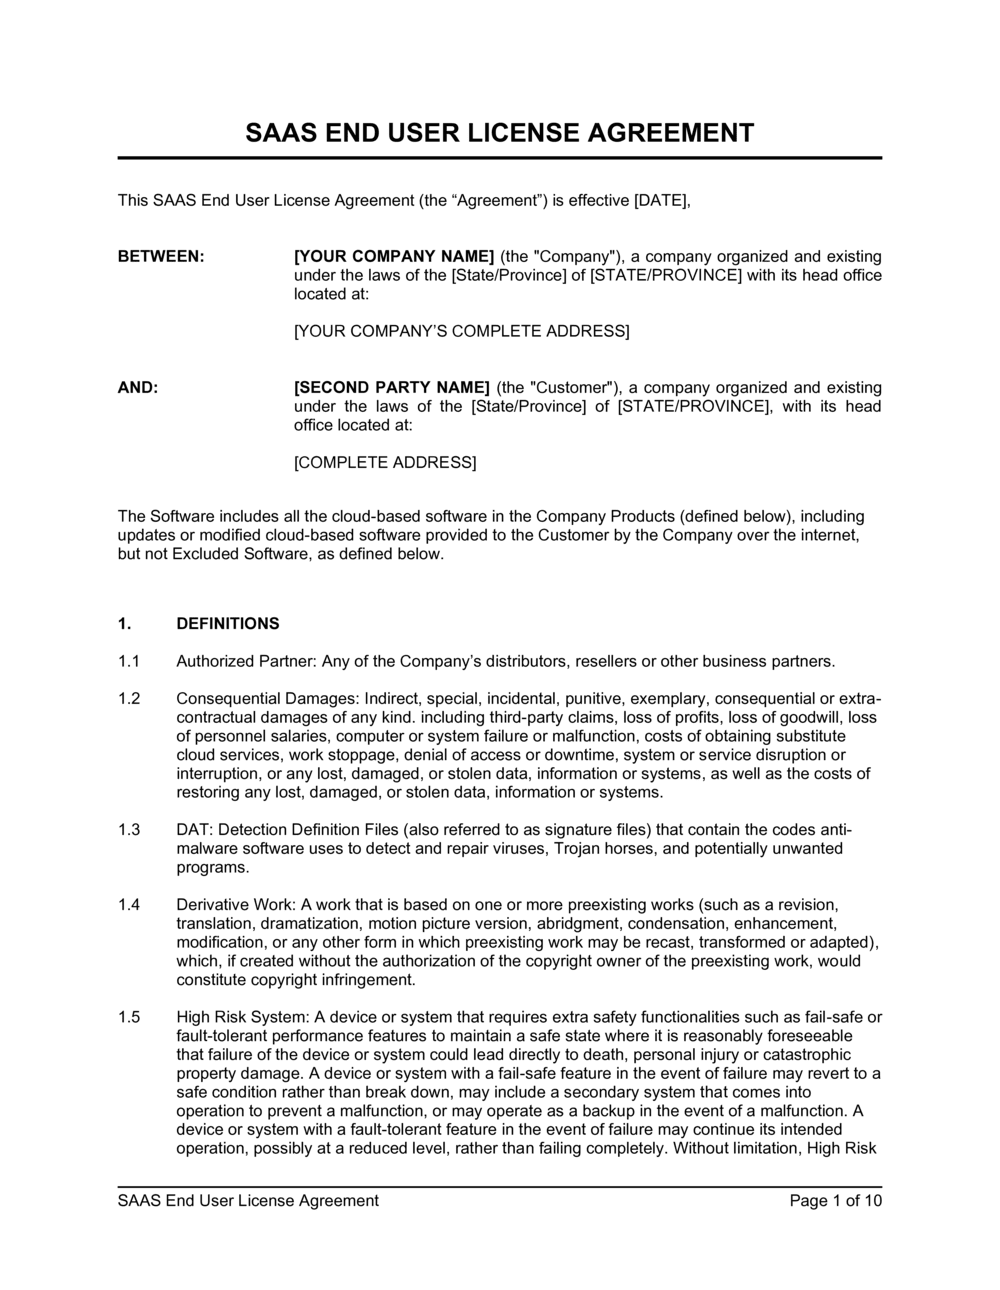 Business-in-a-Box's SaaS End User License Agreement Template